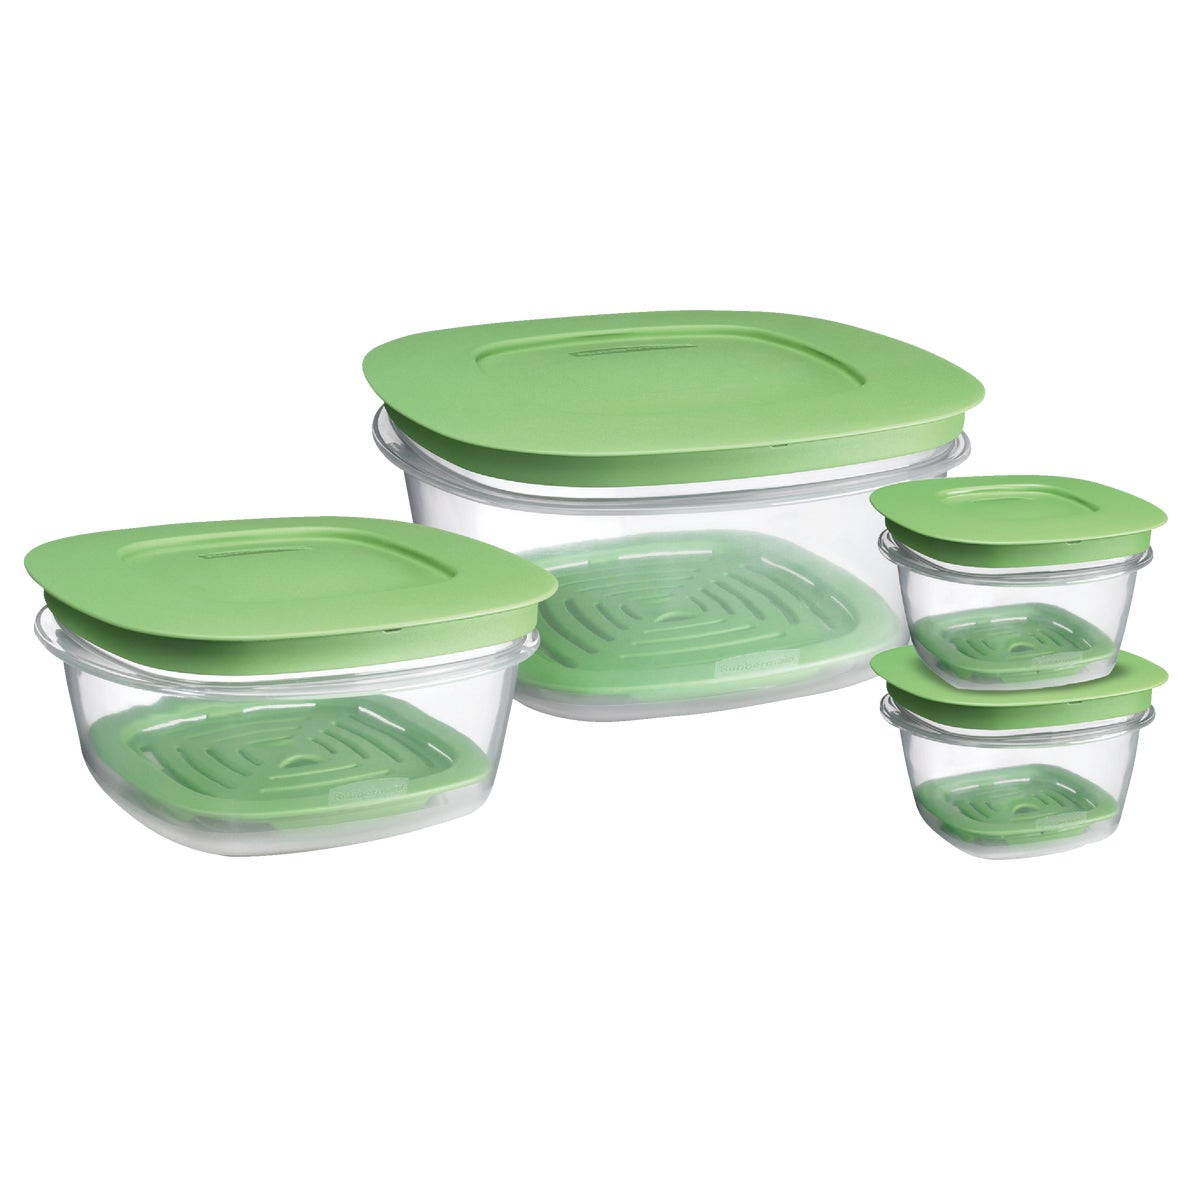 PRODUCE SAVR STORAGE SET